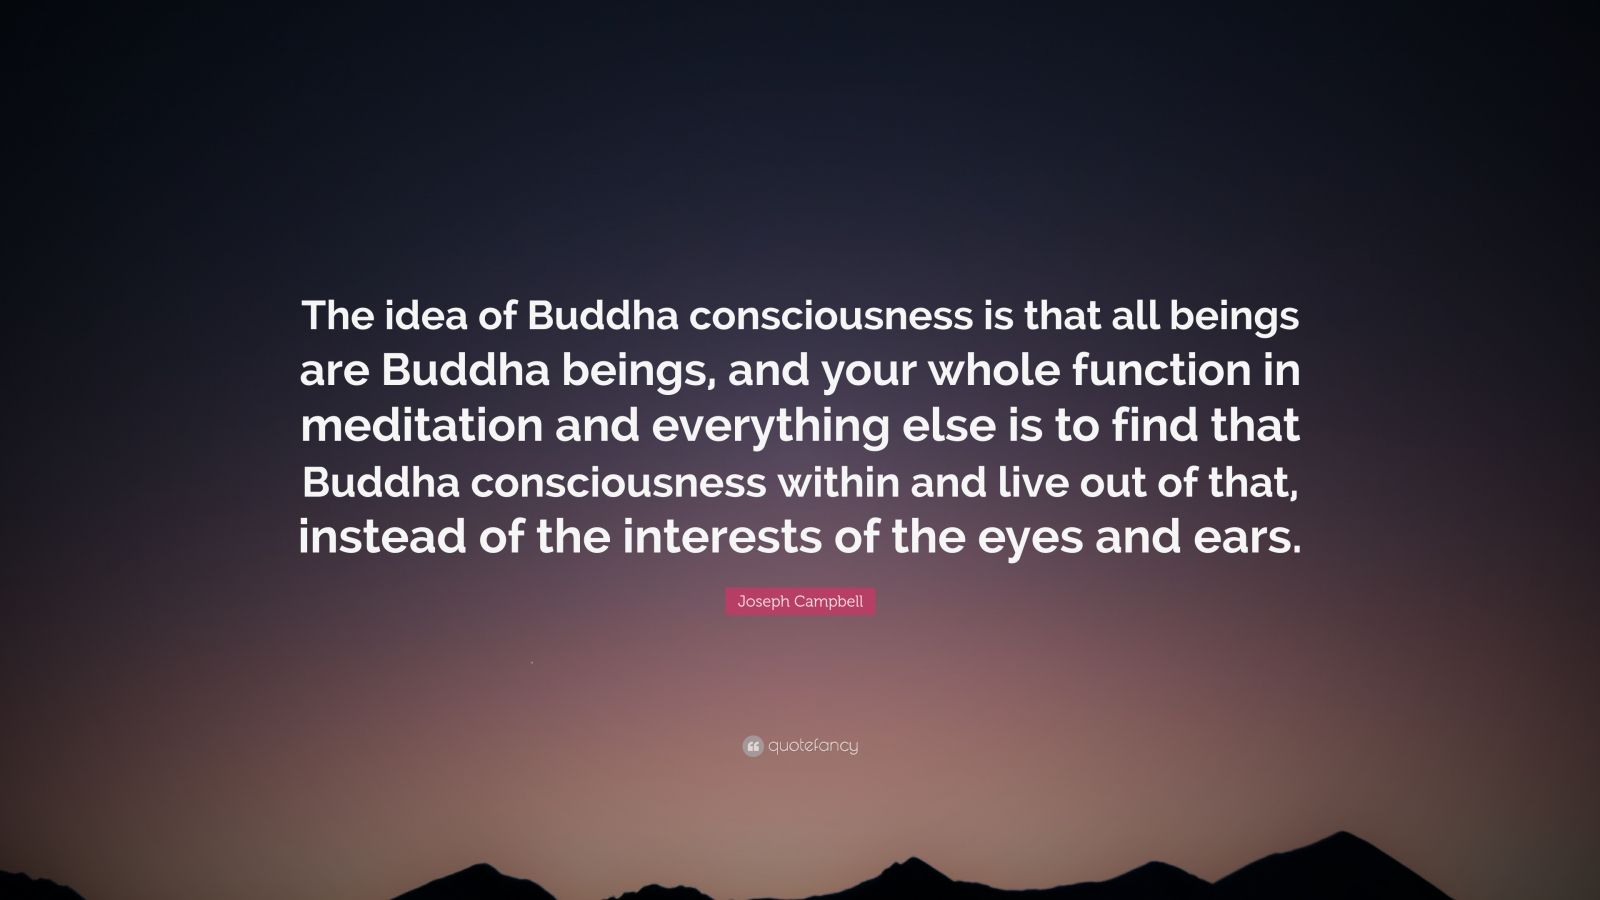 """Joseph Campbell Quote: """"The idea of Buddha consciousness is that all beings are Buddha beings, and your whole function in meditation and everything else is to find that Buddha consciousness within and live out of that, instead of the interests of the eyes and ears."""""""